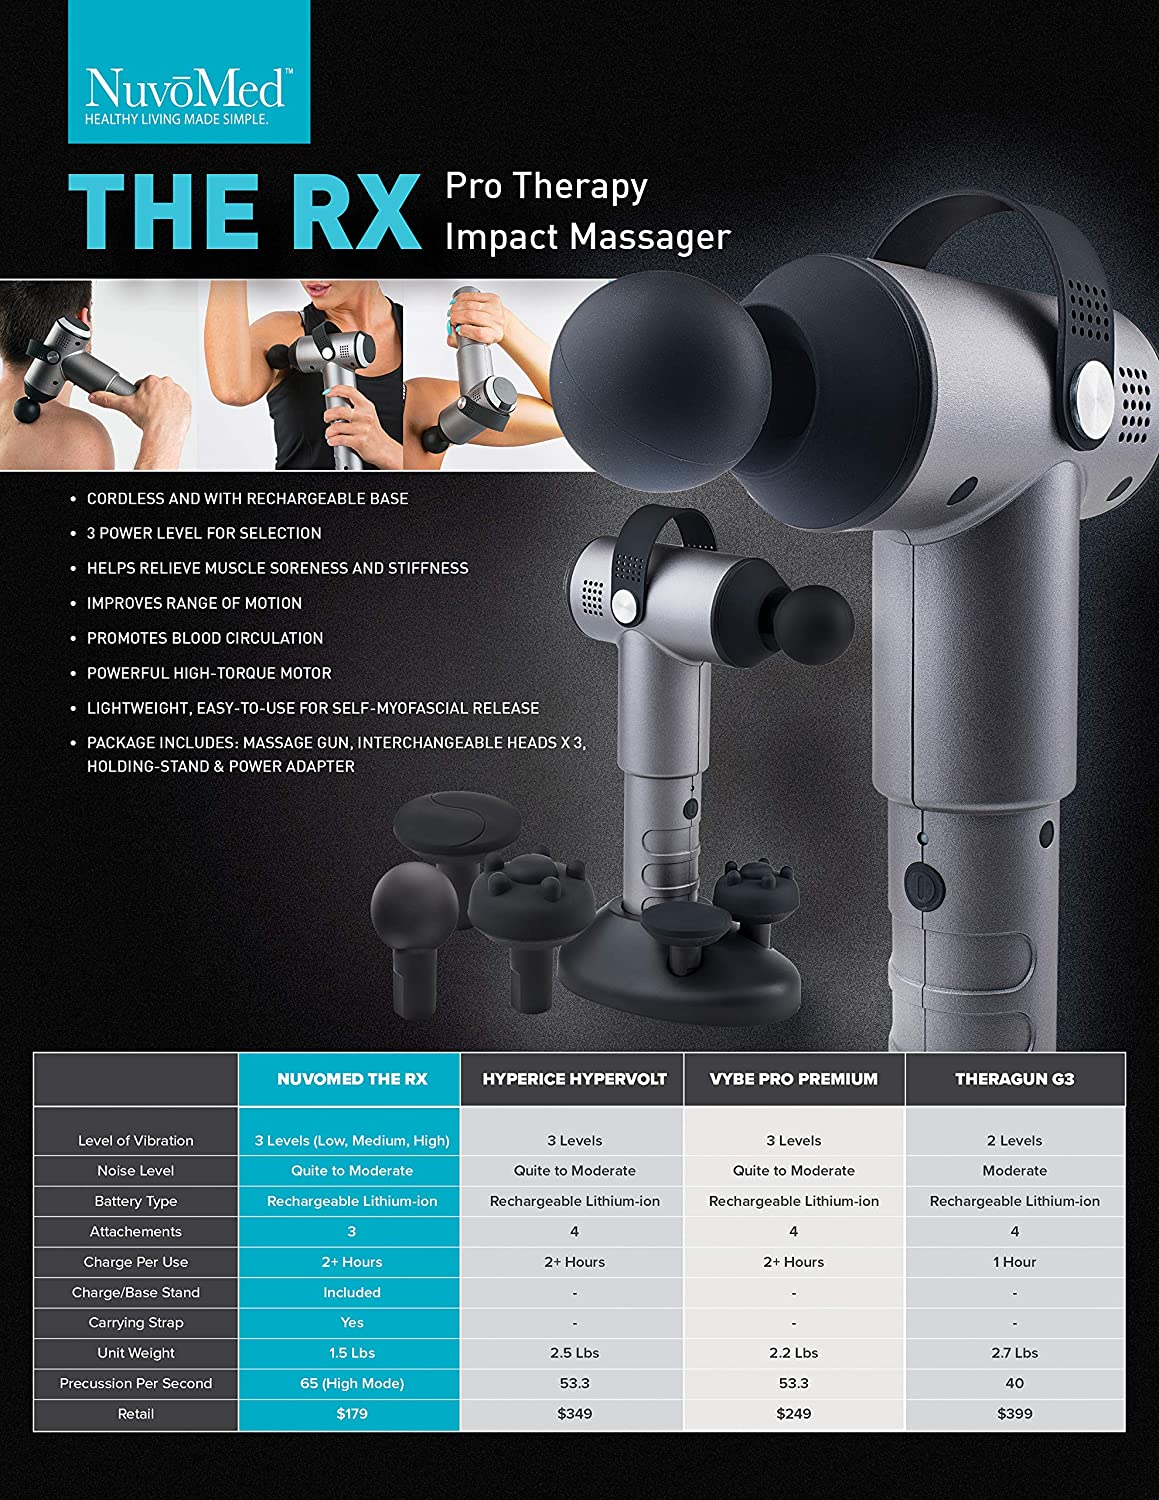 NuvoMed The RX Pro-Therapy Impact Massager